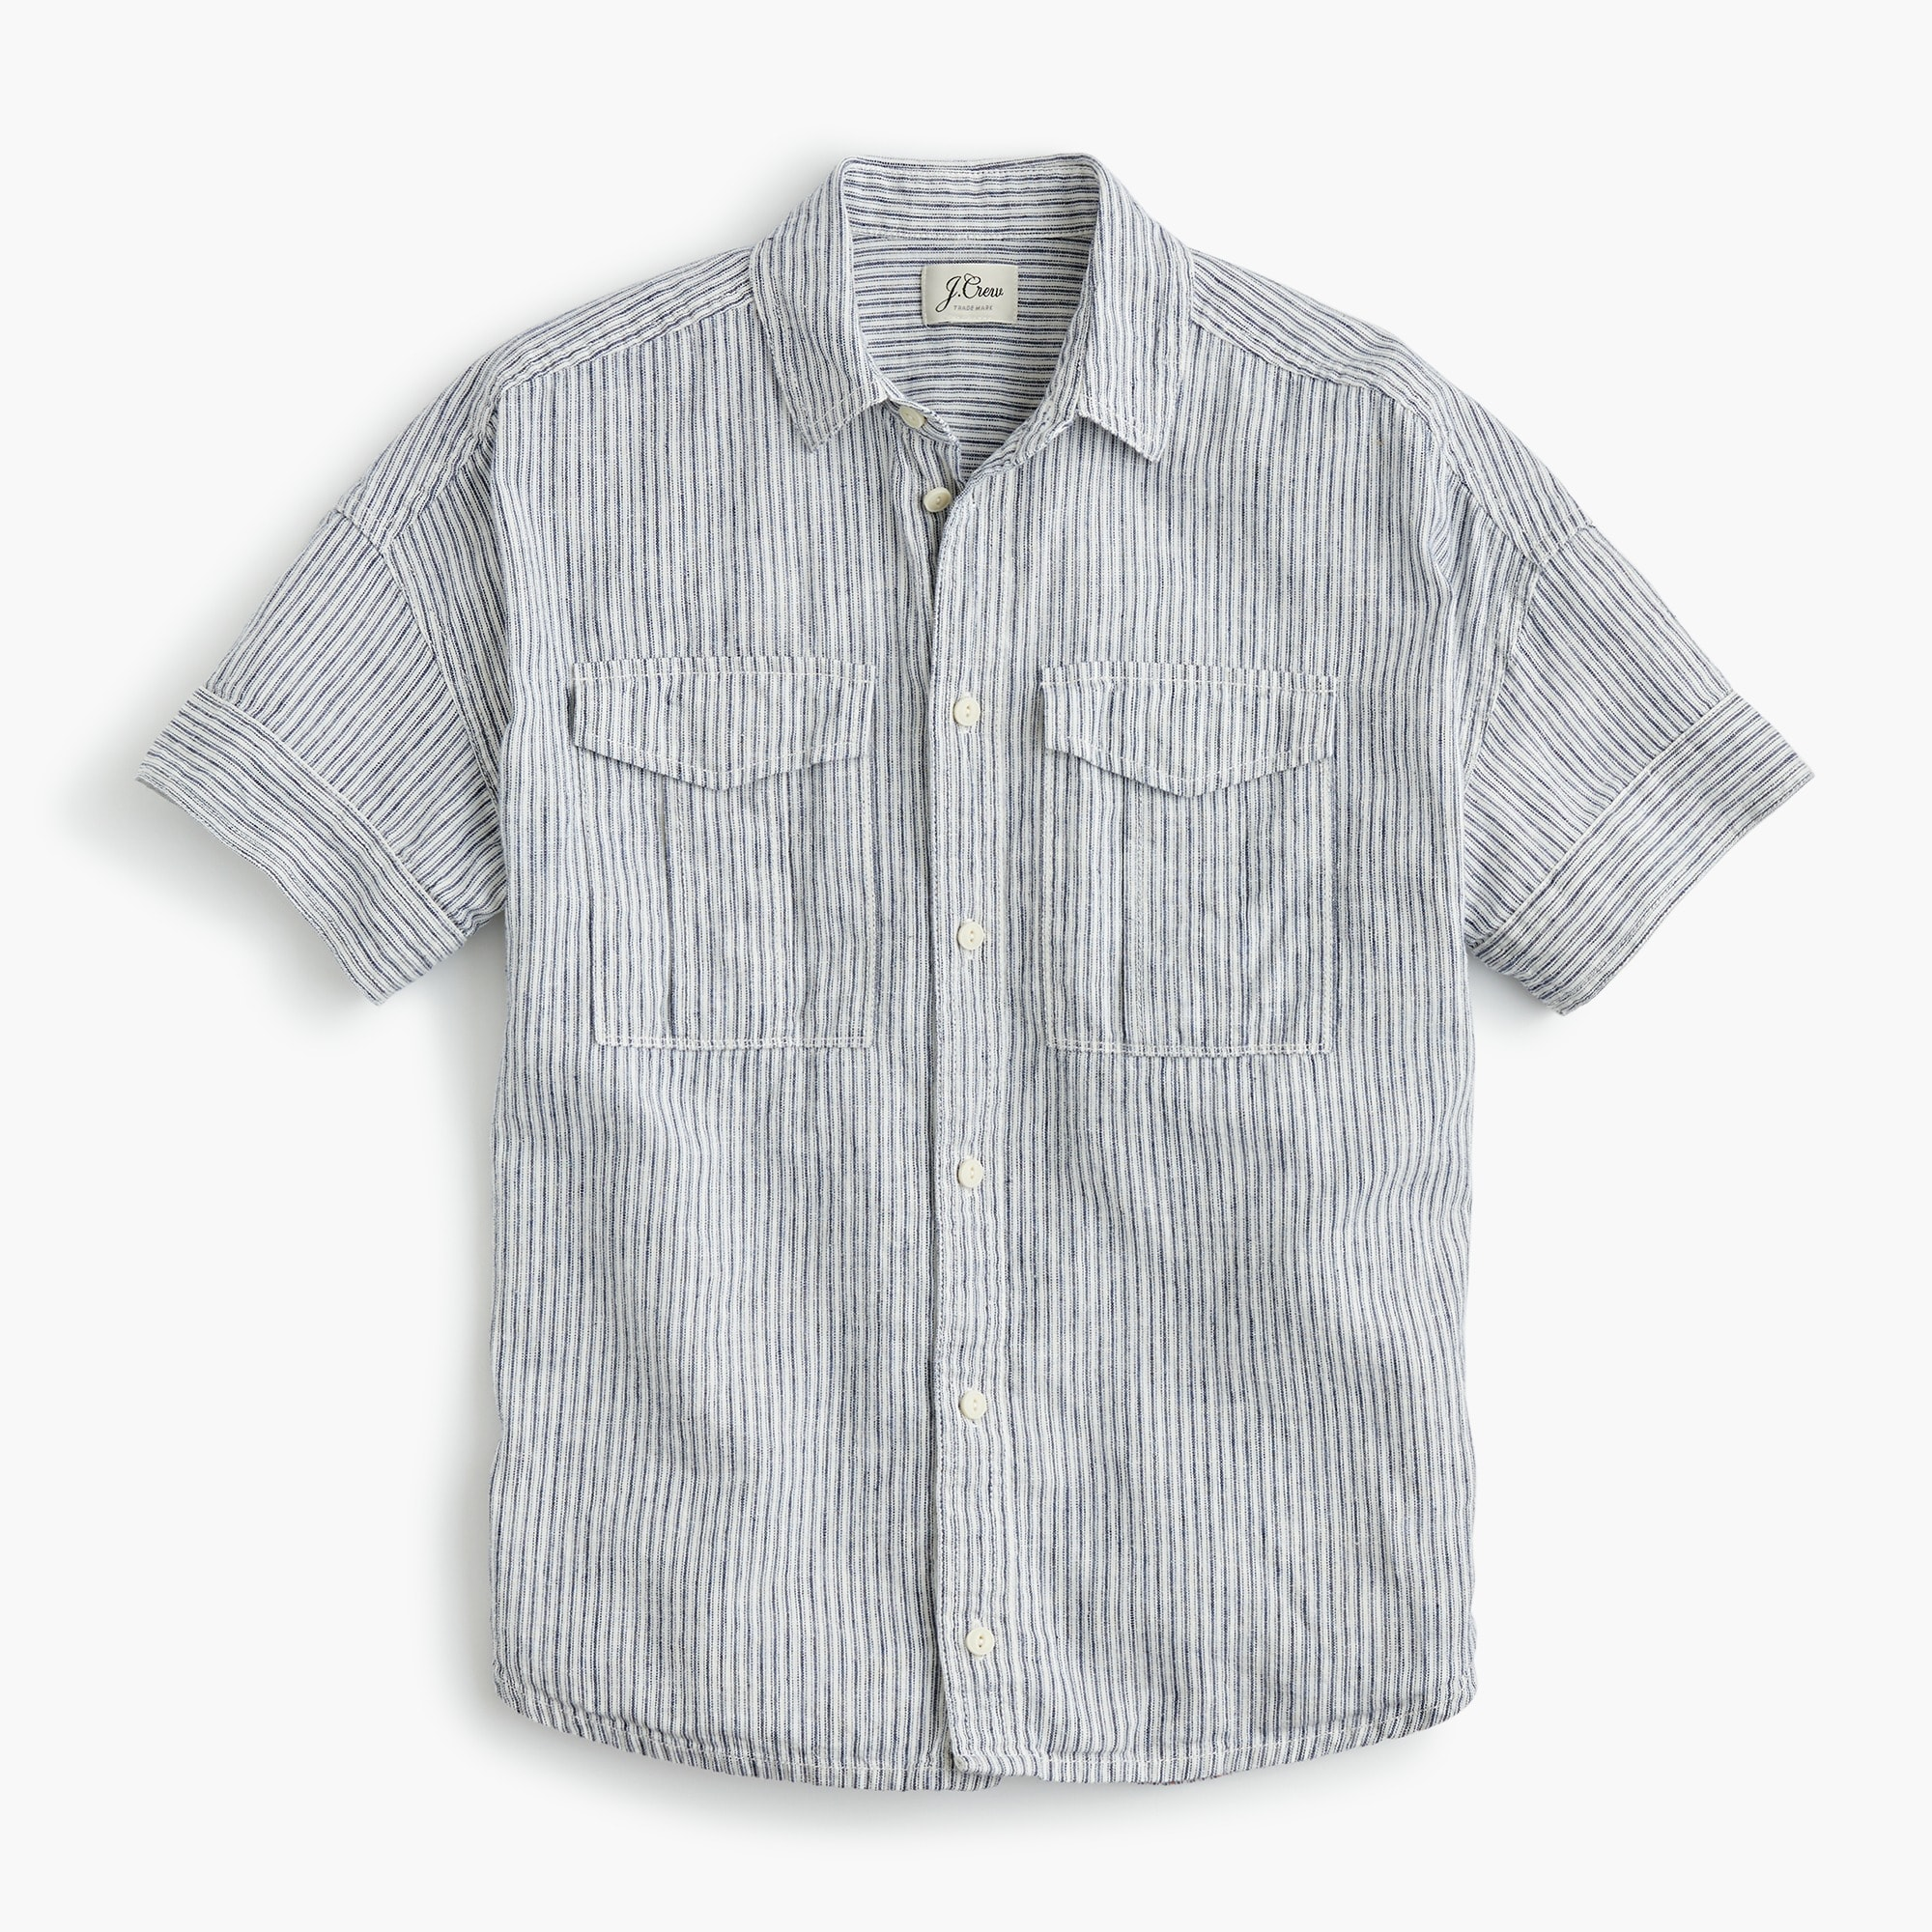 Tall utility pocket shirt in chambray stripe